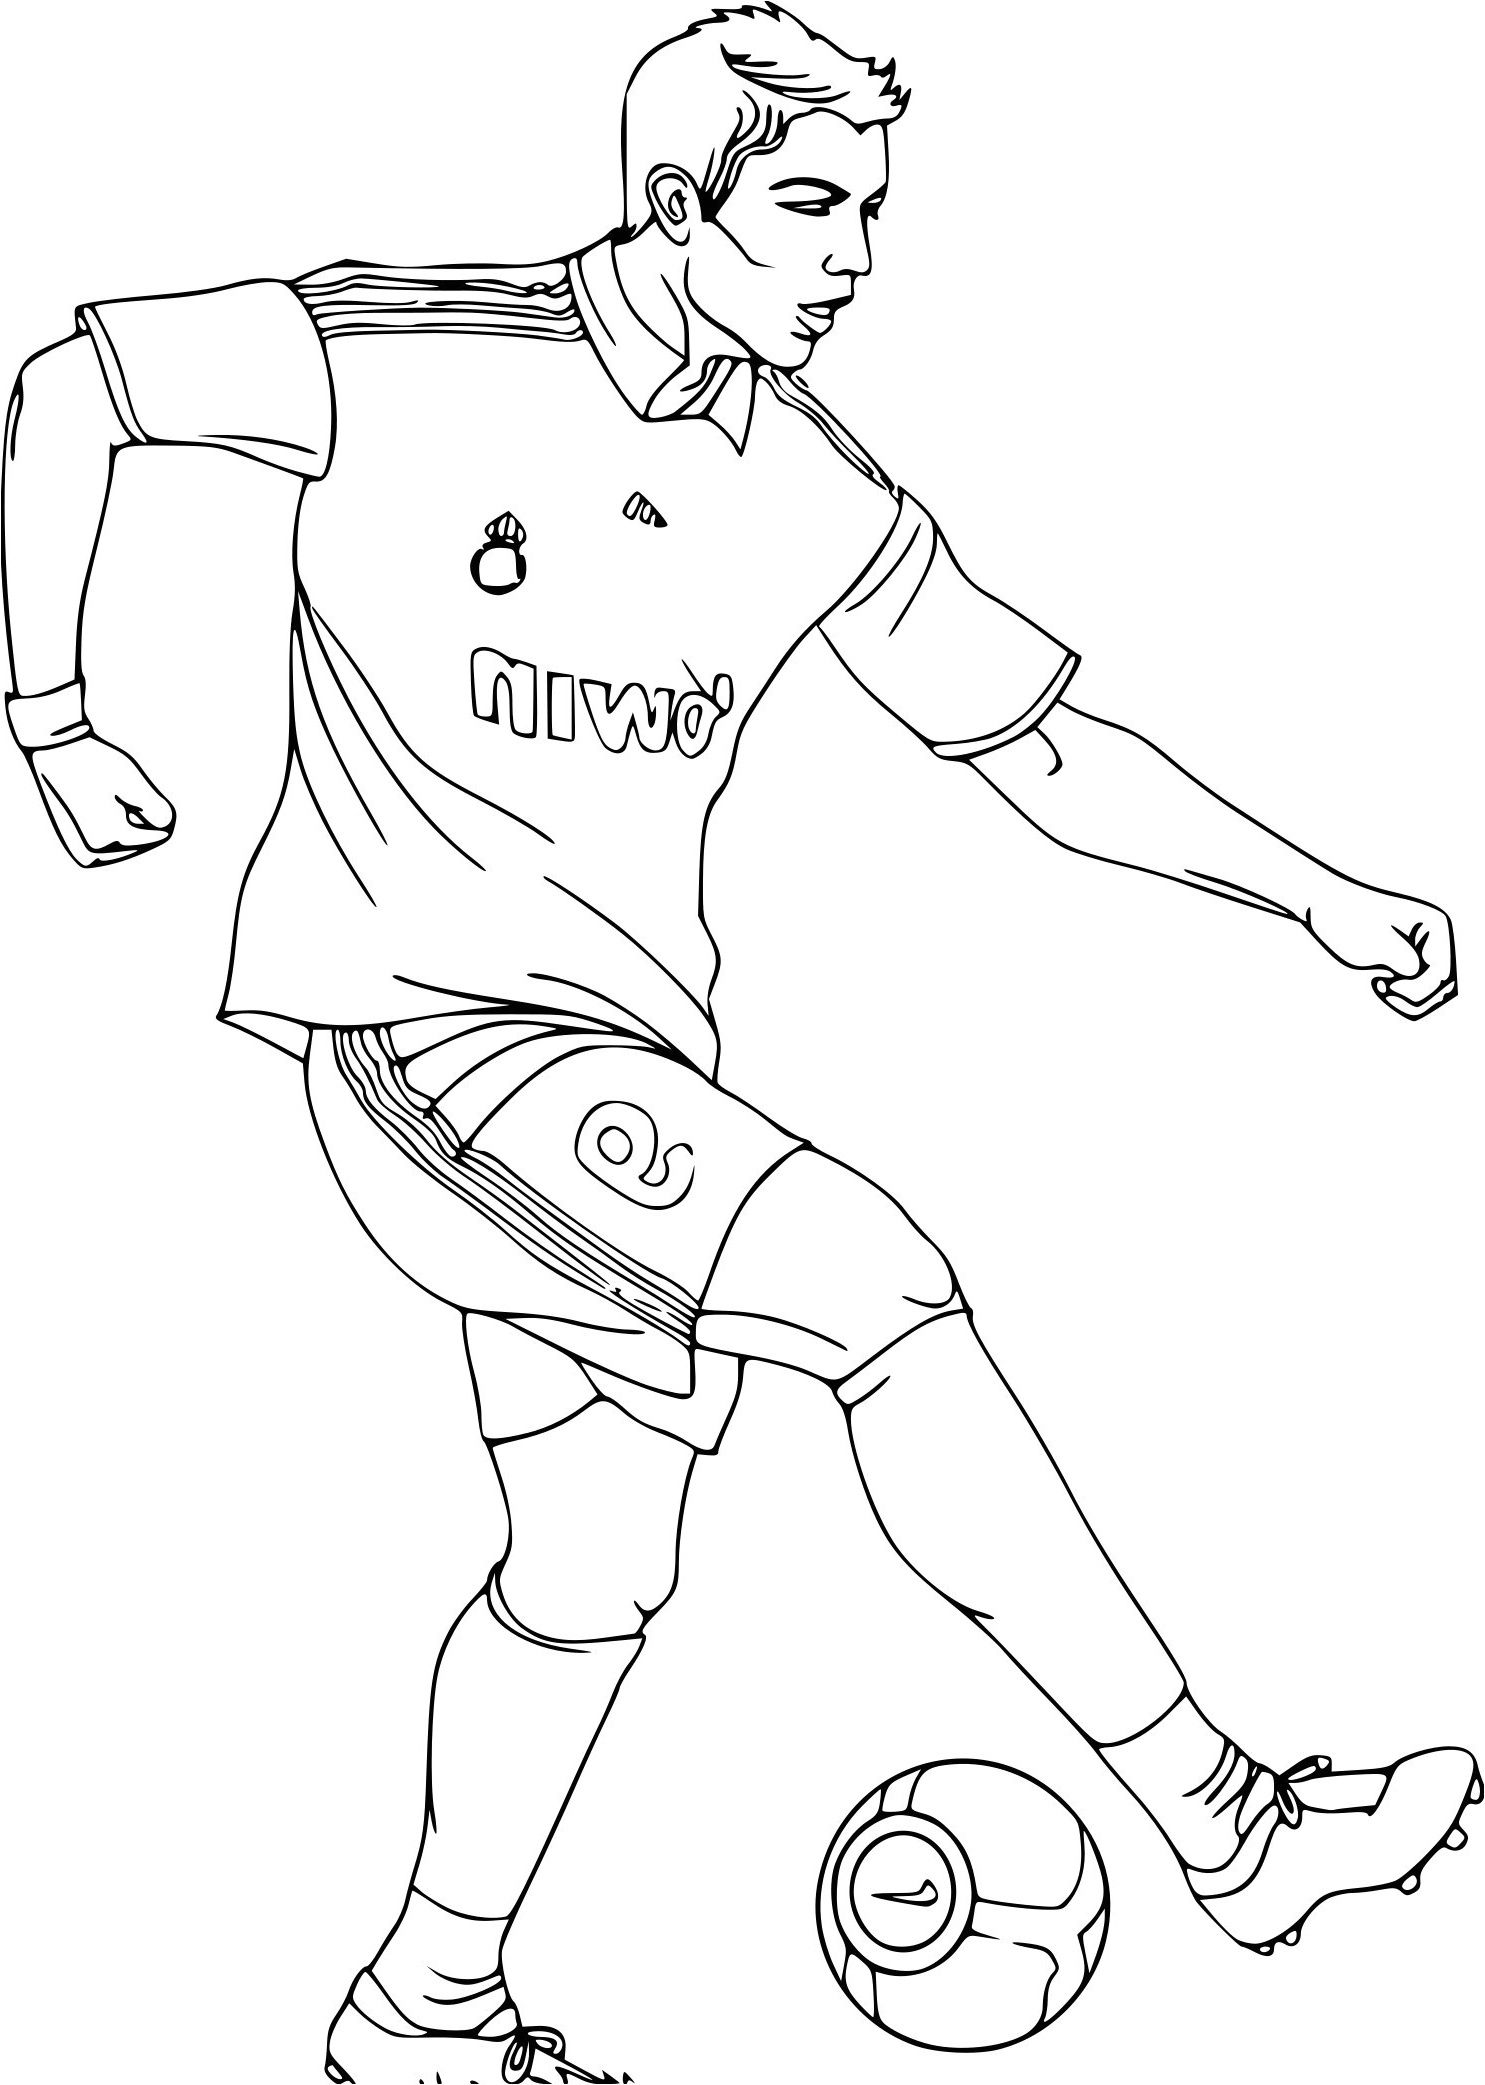 Charmant Coloriage Mbappe 59 Dans Coloriage Books by Coloriage Mbappe